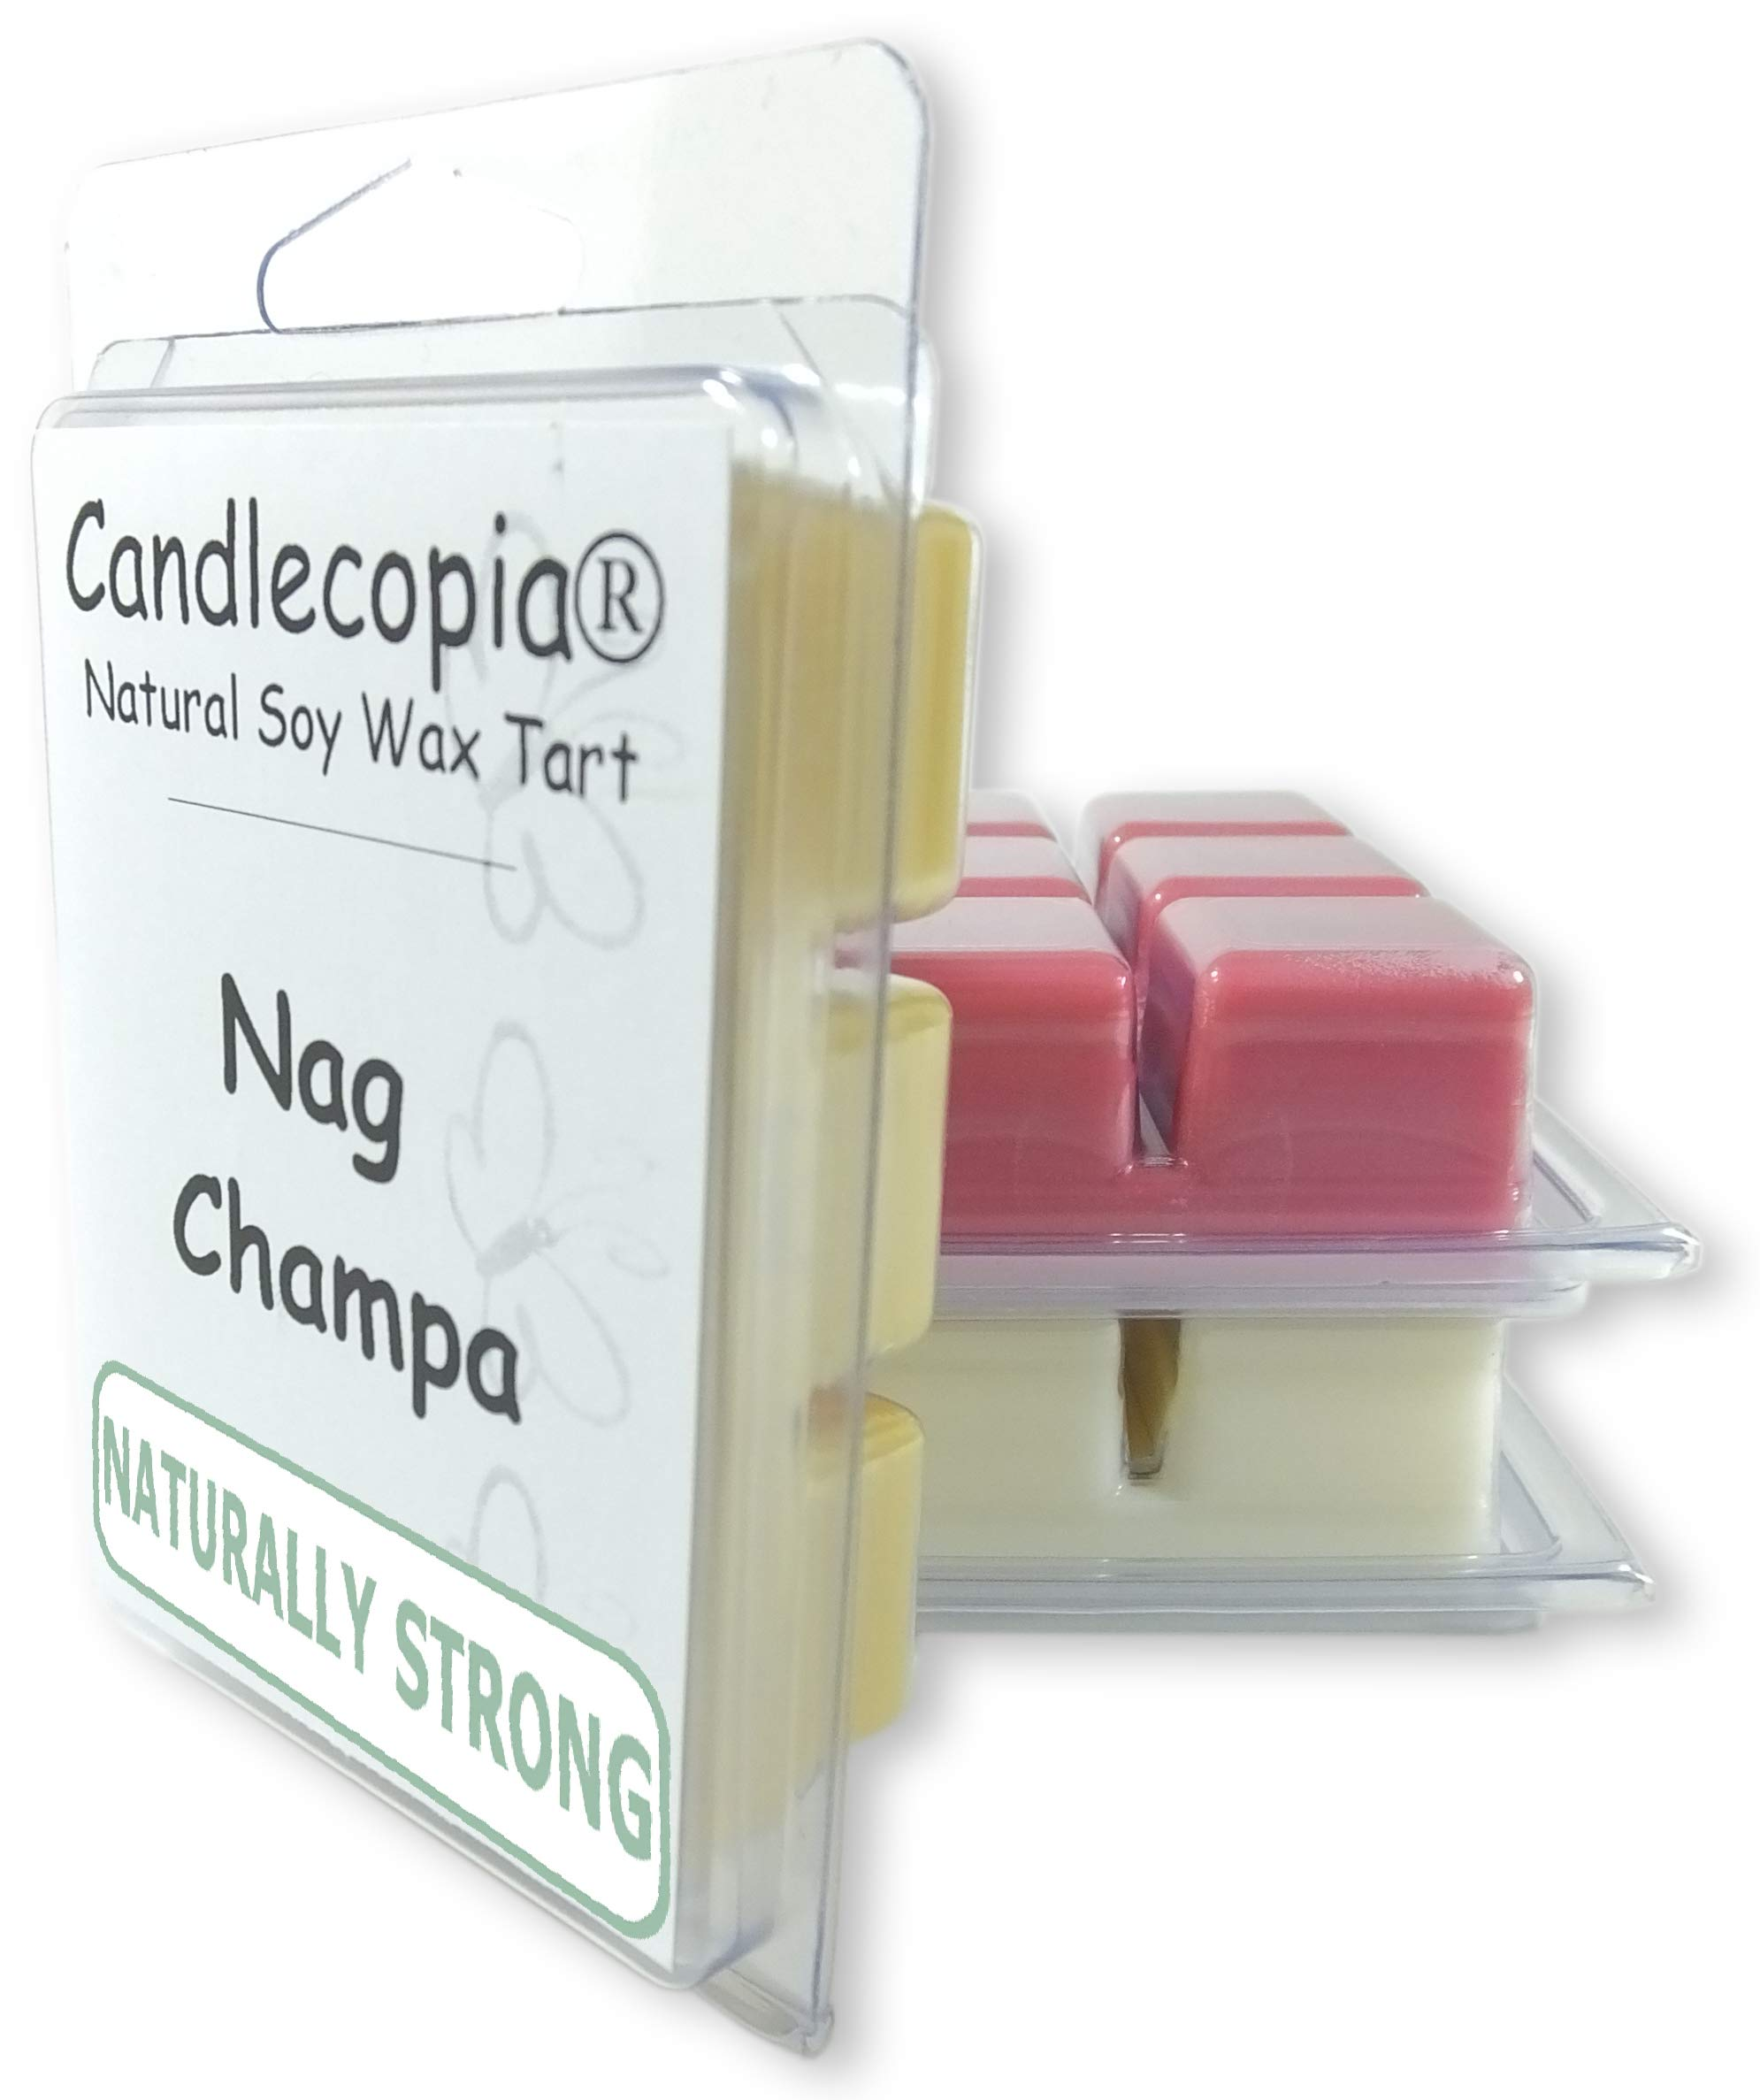 Candlecopia Nag Champa, Dragon's Blood and Vanilla Sandalwood Strongly Scented Hand Poured Vegan Wax Melts, 18 Scented Wax Cubes, 9.6 Ounces in 3 x 6-Packs